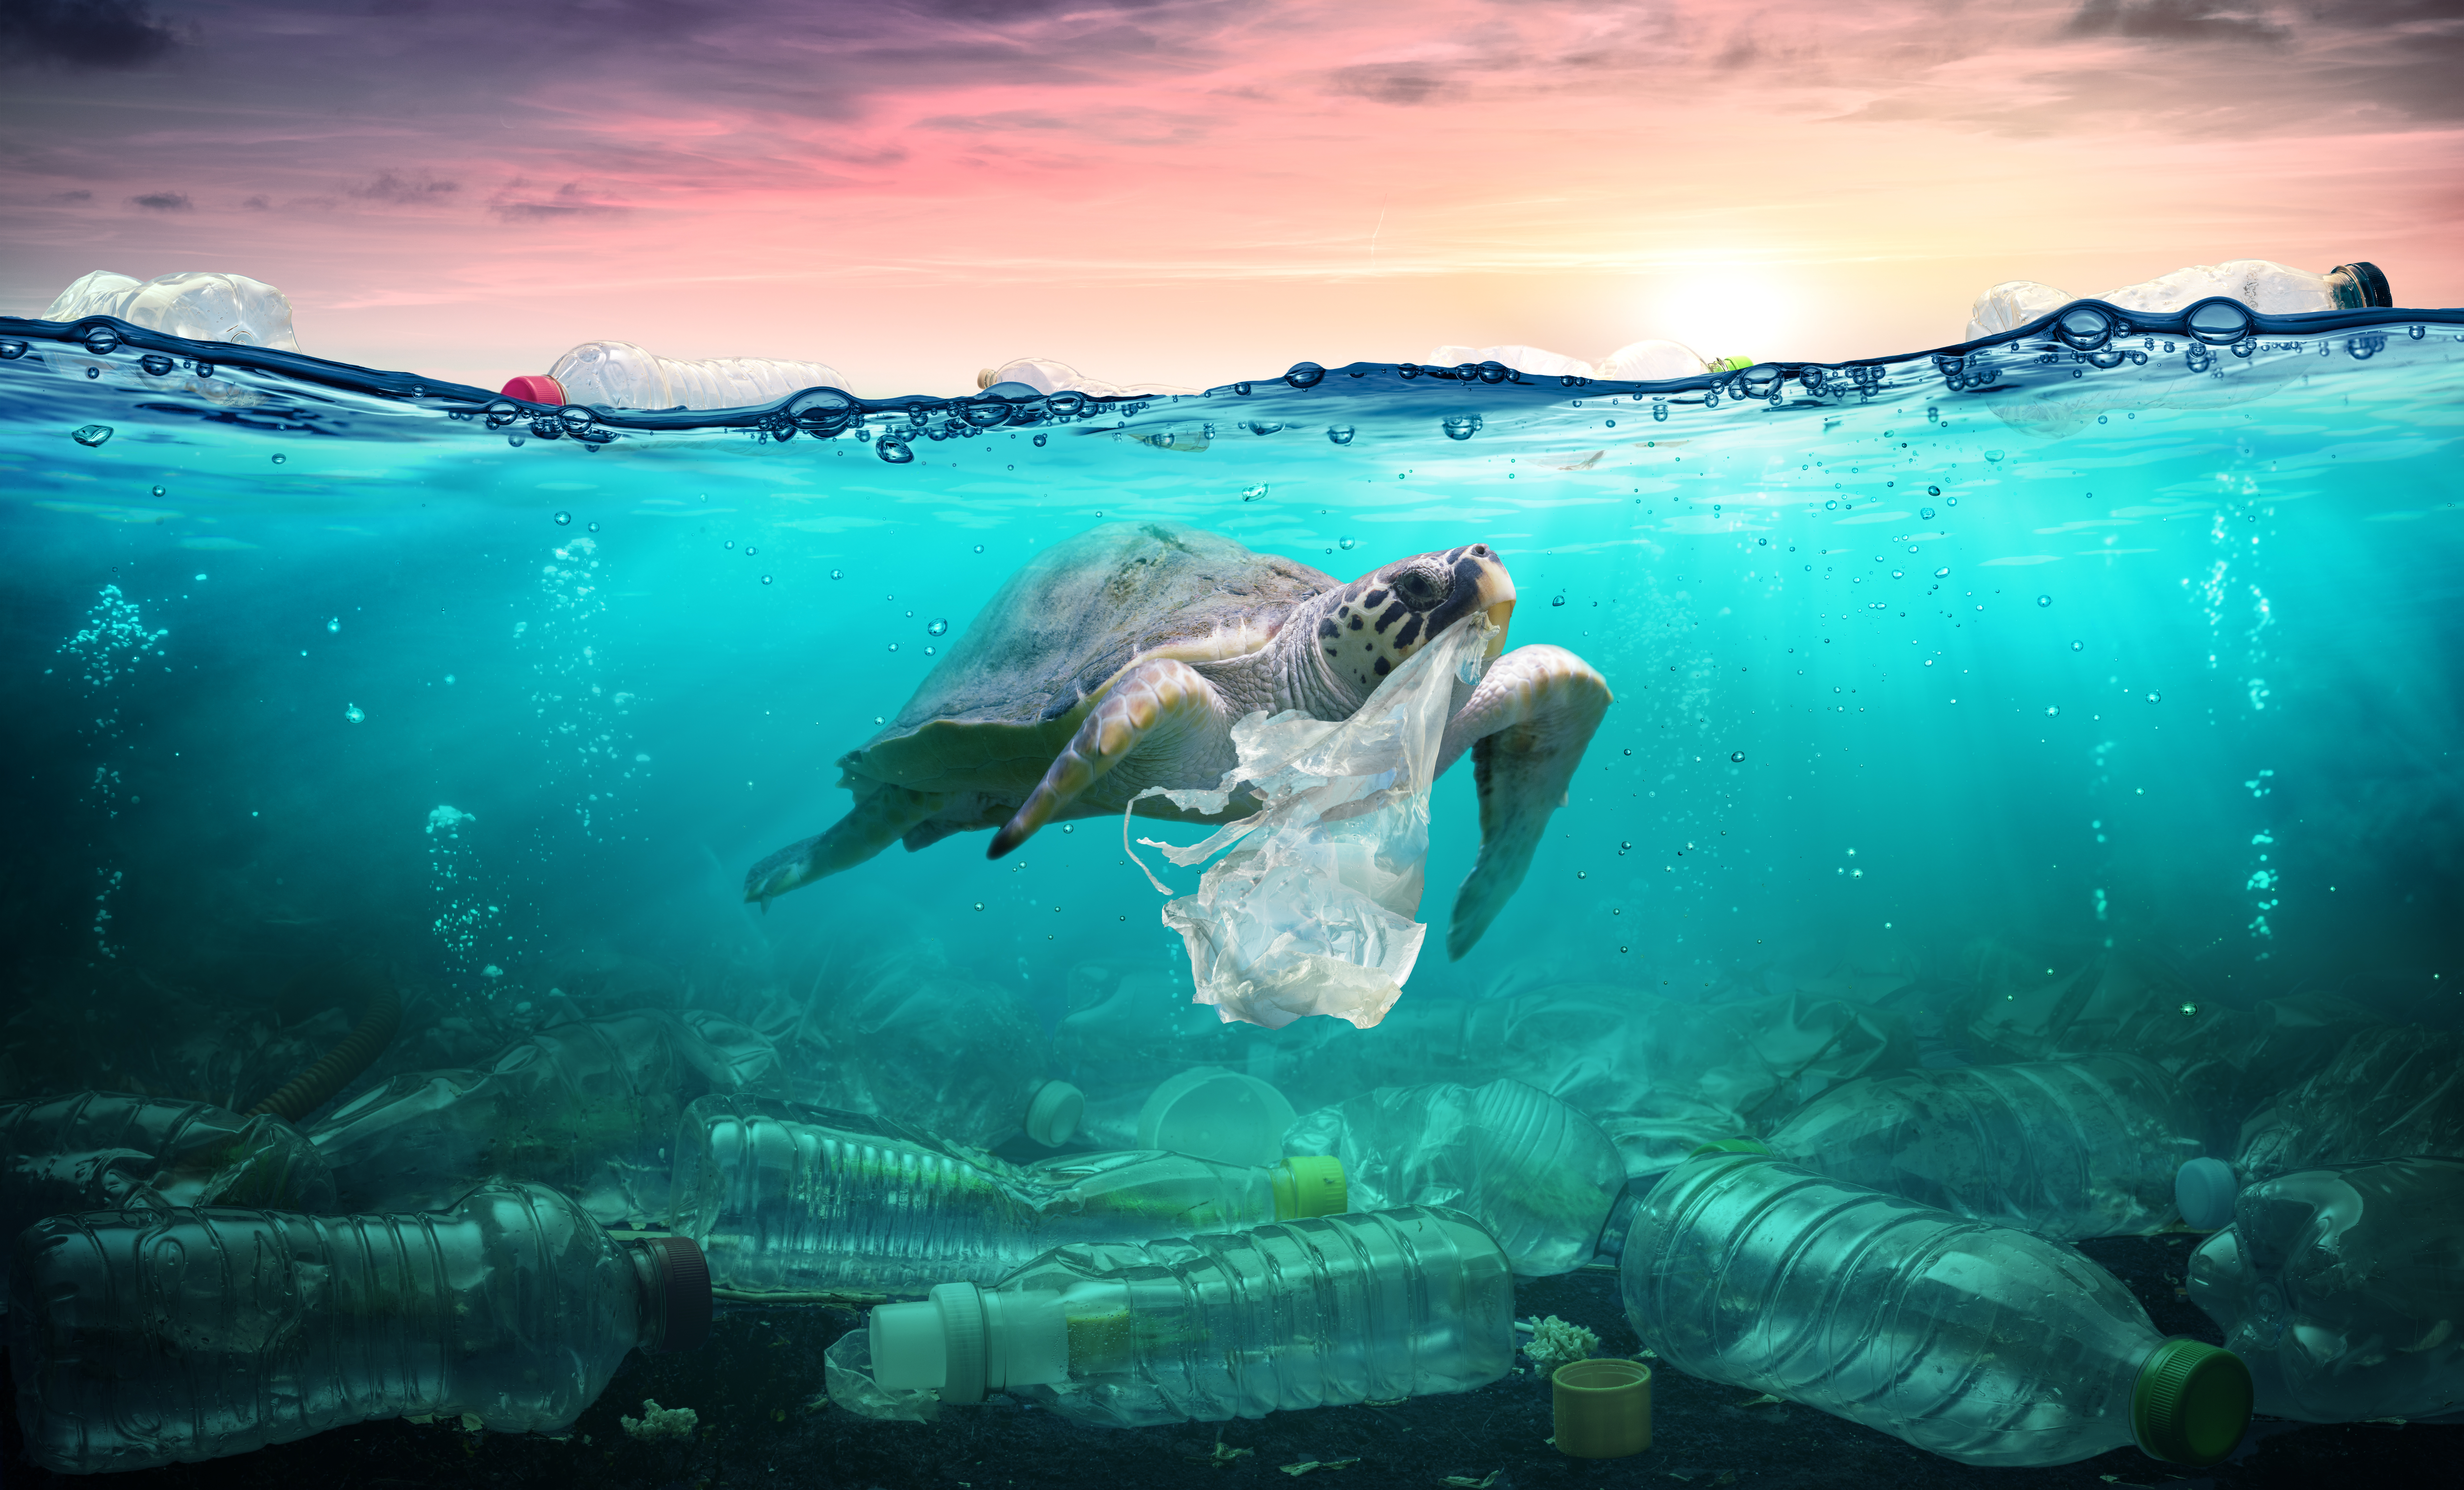 Sea turtle in ocean surrounded by plastic pollution